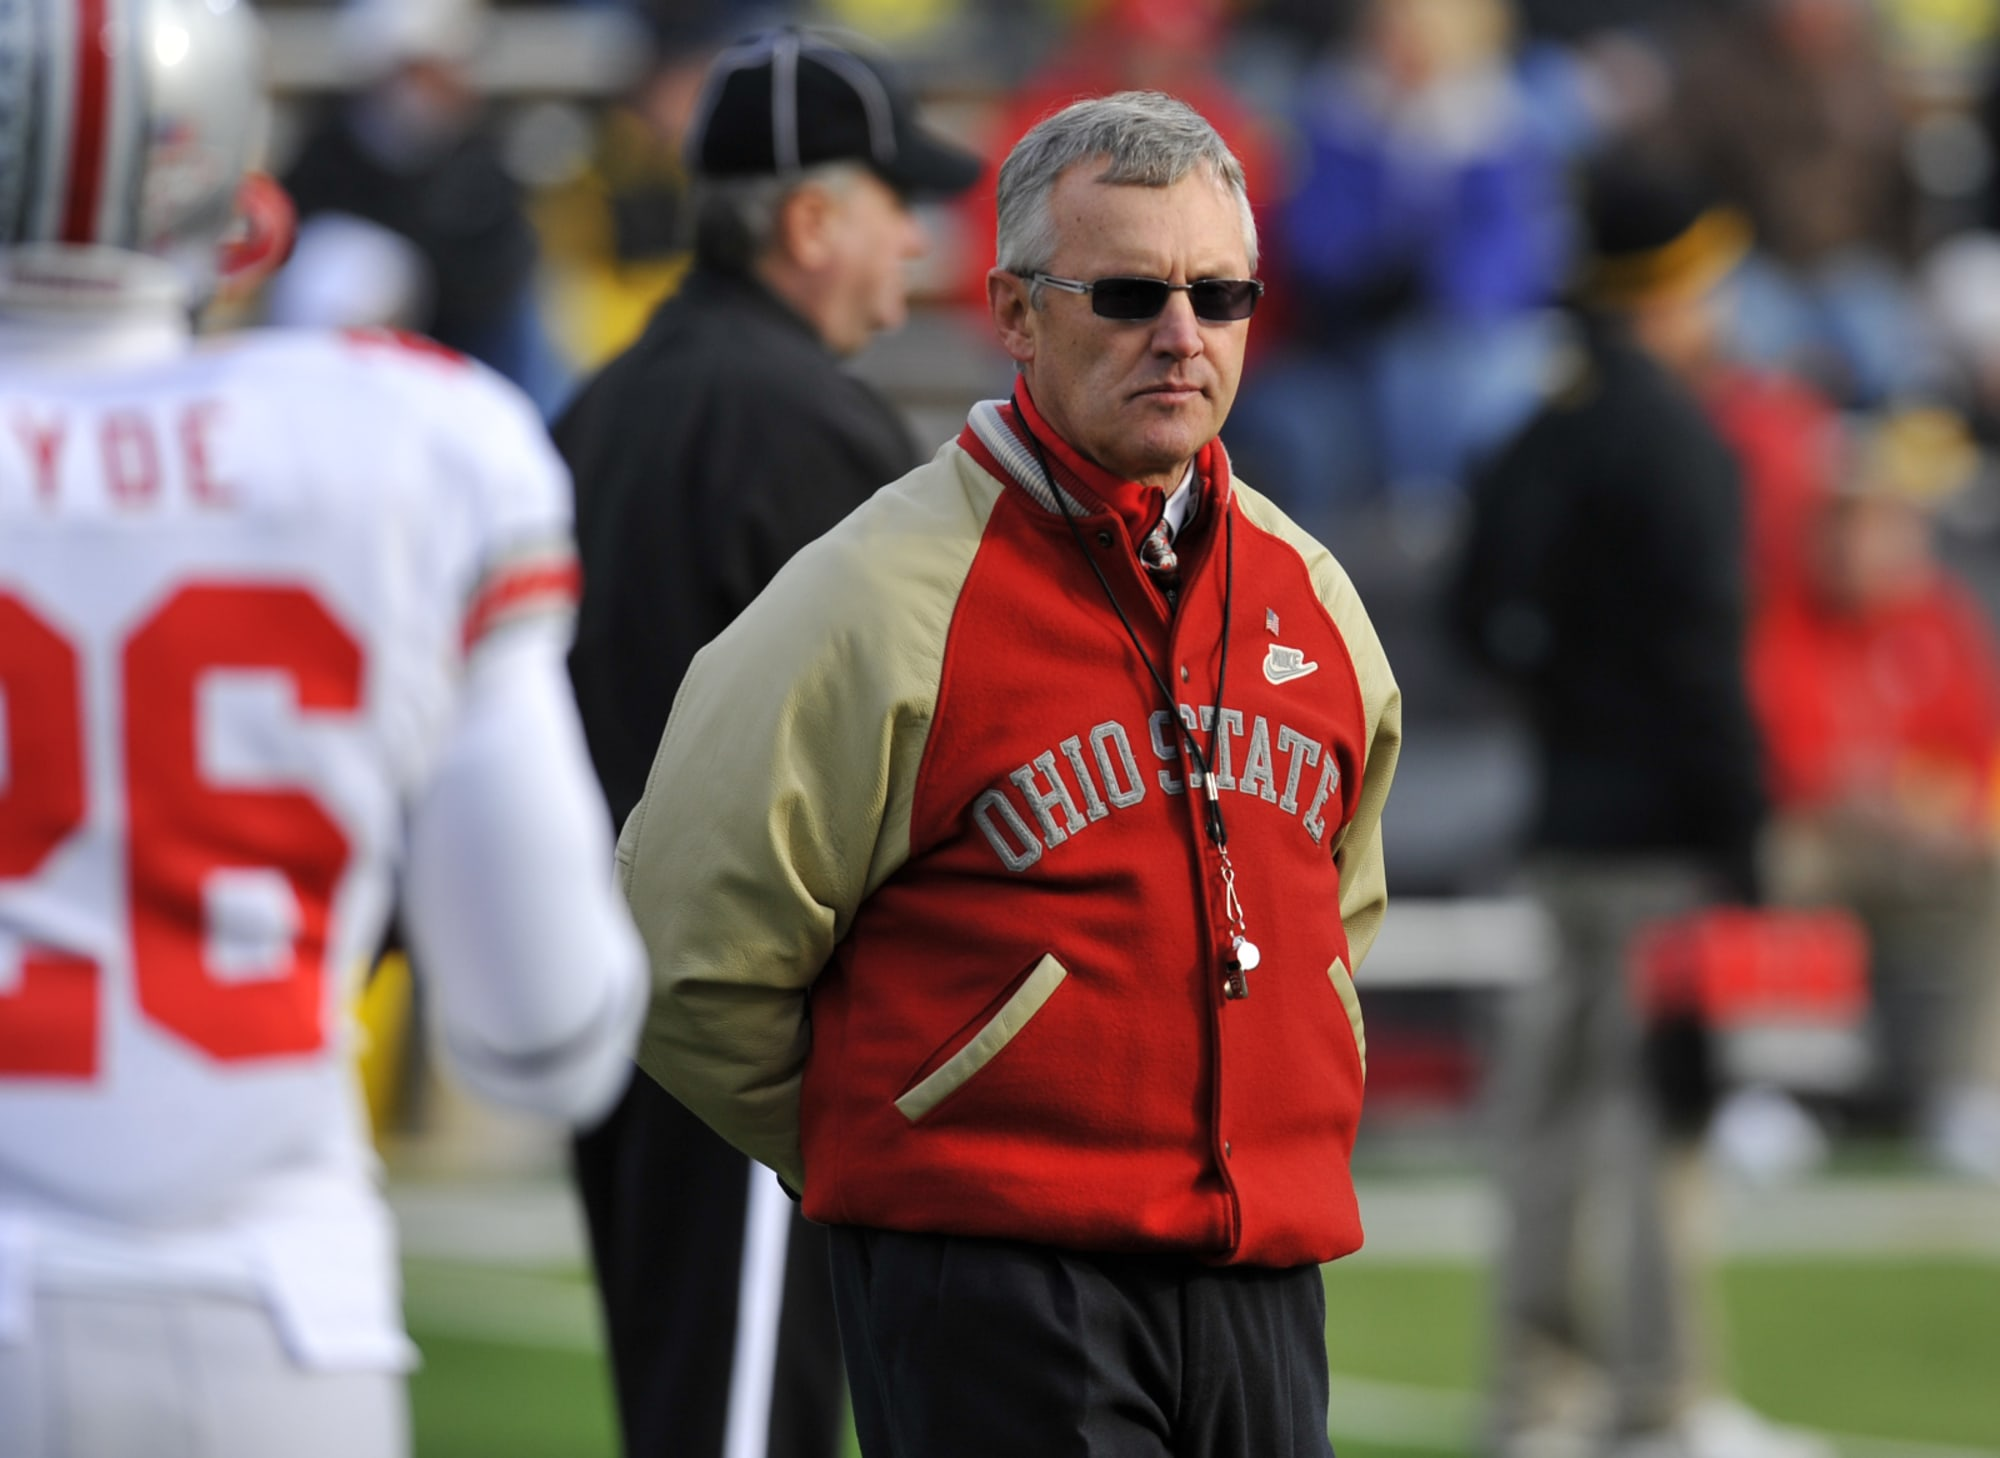 Biggest Ohio State recruiting busts of the 2010s: 2010